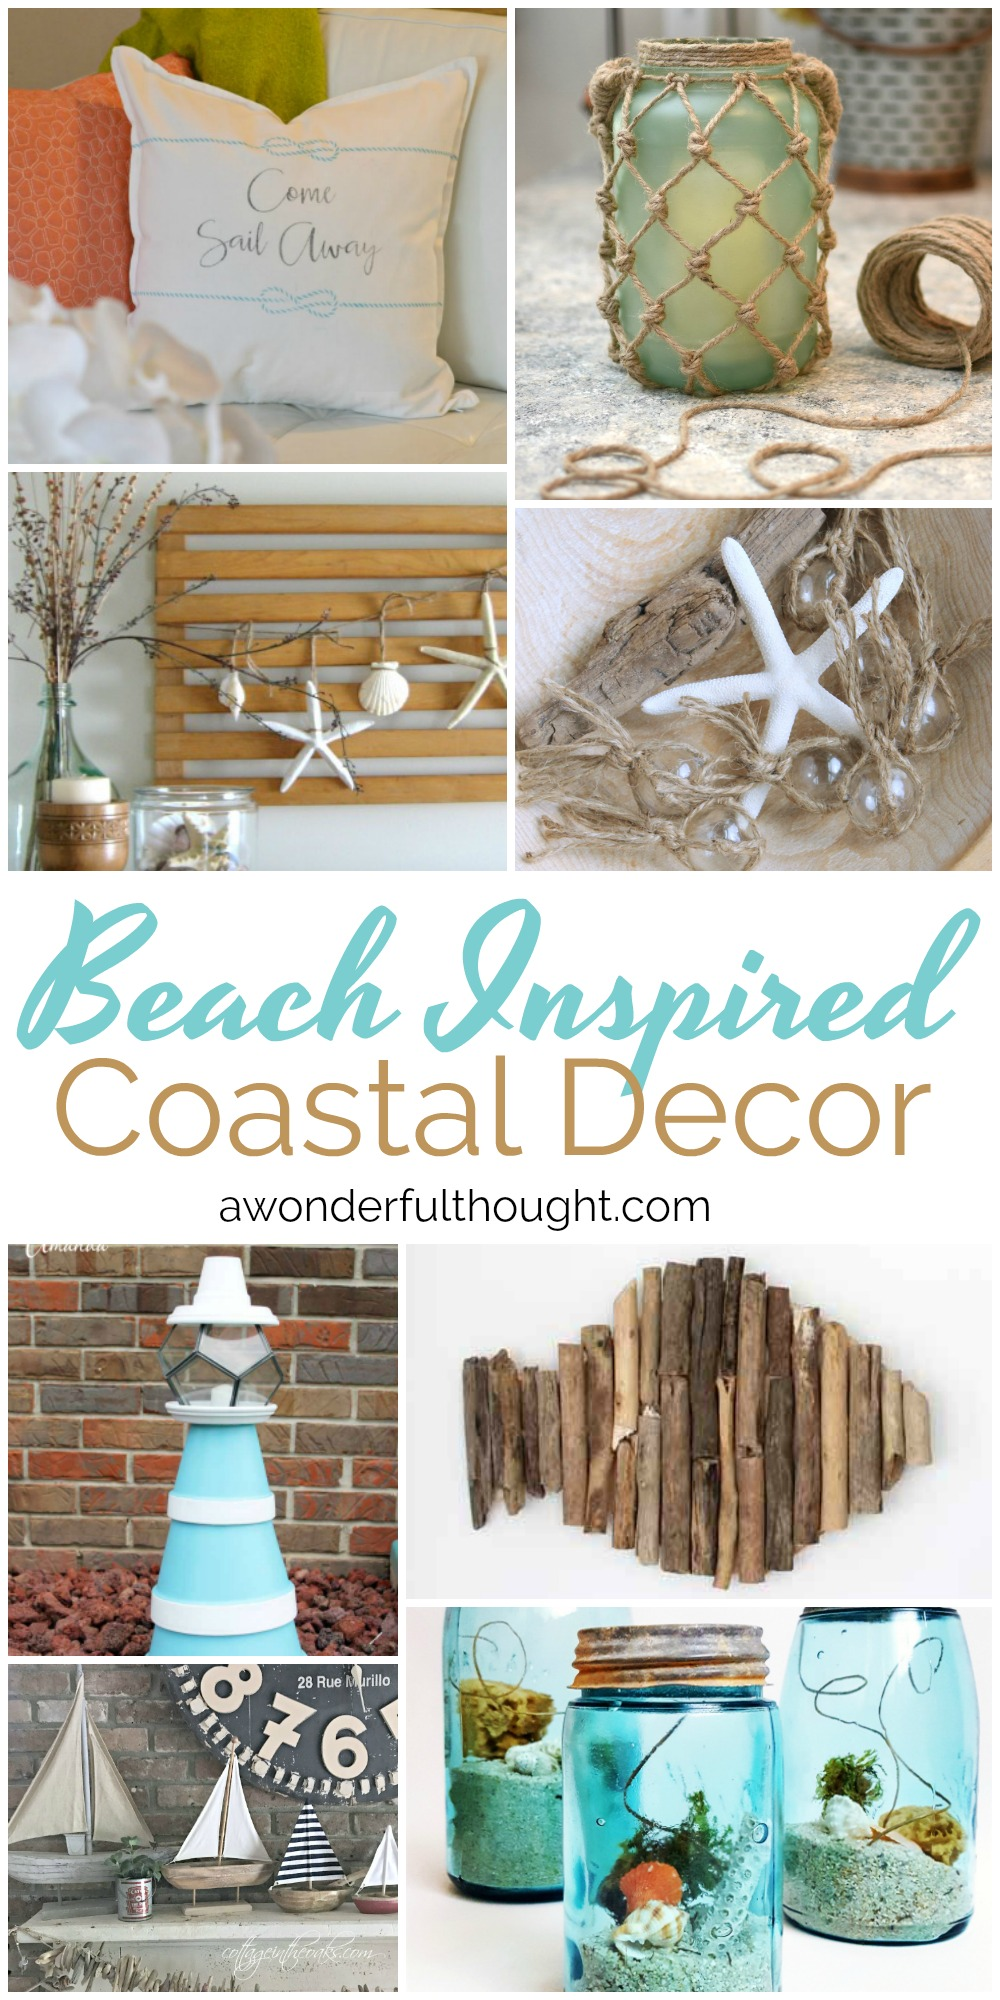 Beach inspired coastal decor mm 162 a wonderful thought for Coastal beach home decor